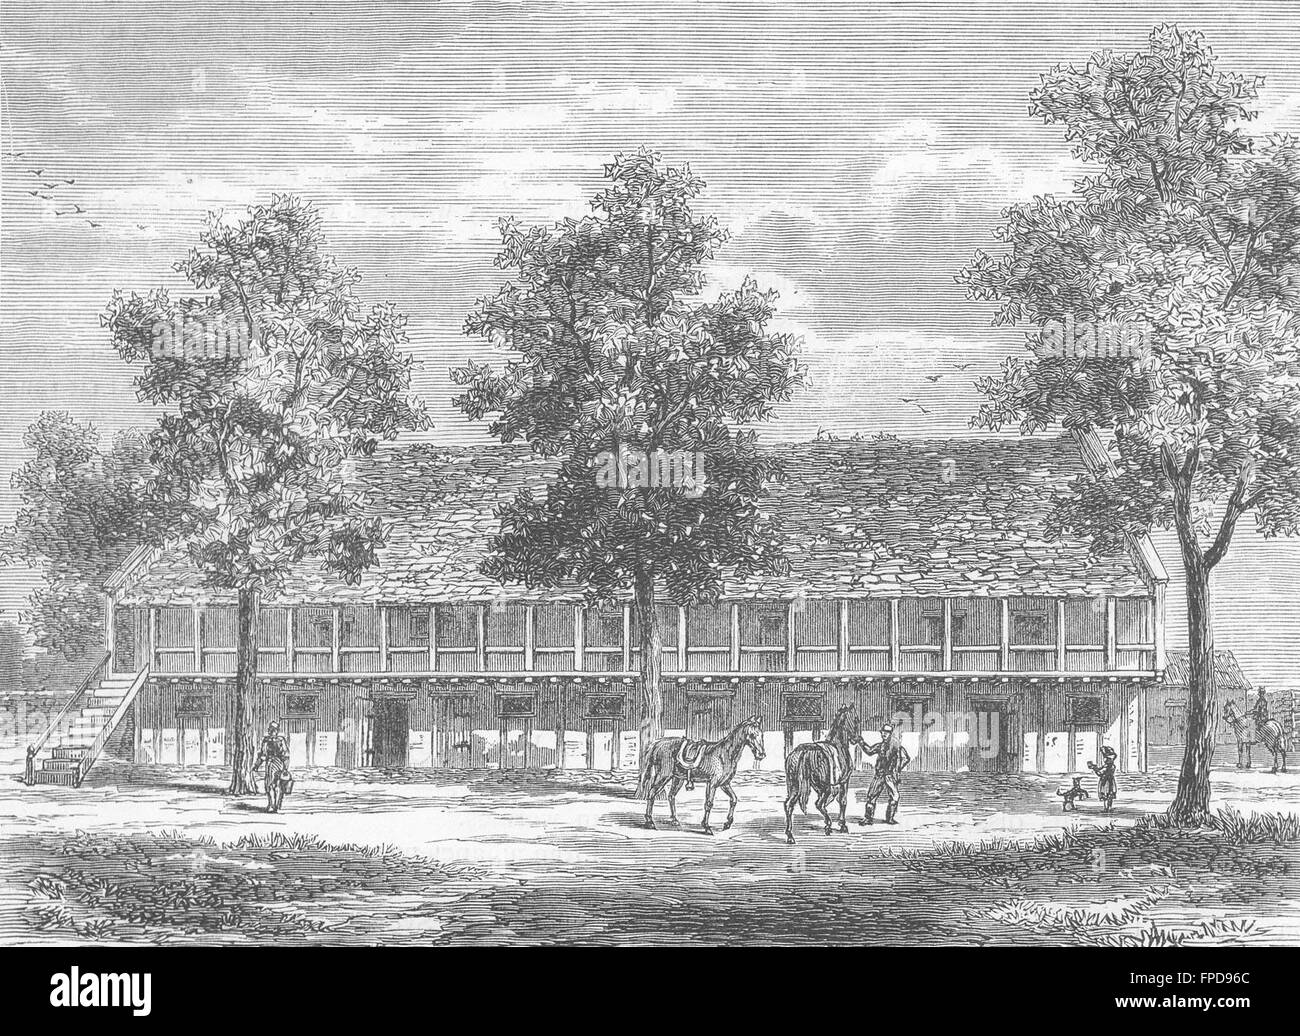 SYON HOUSE: The Old Stables at Syon House, antique print 1888 - Stock Image